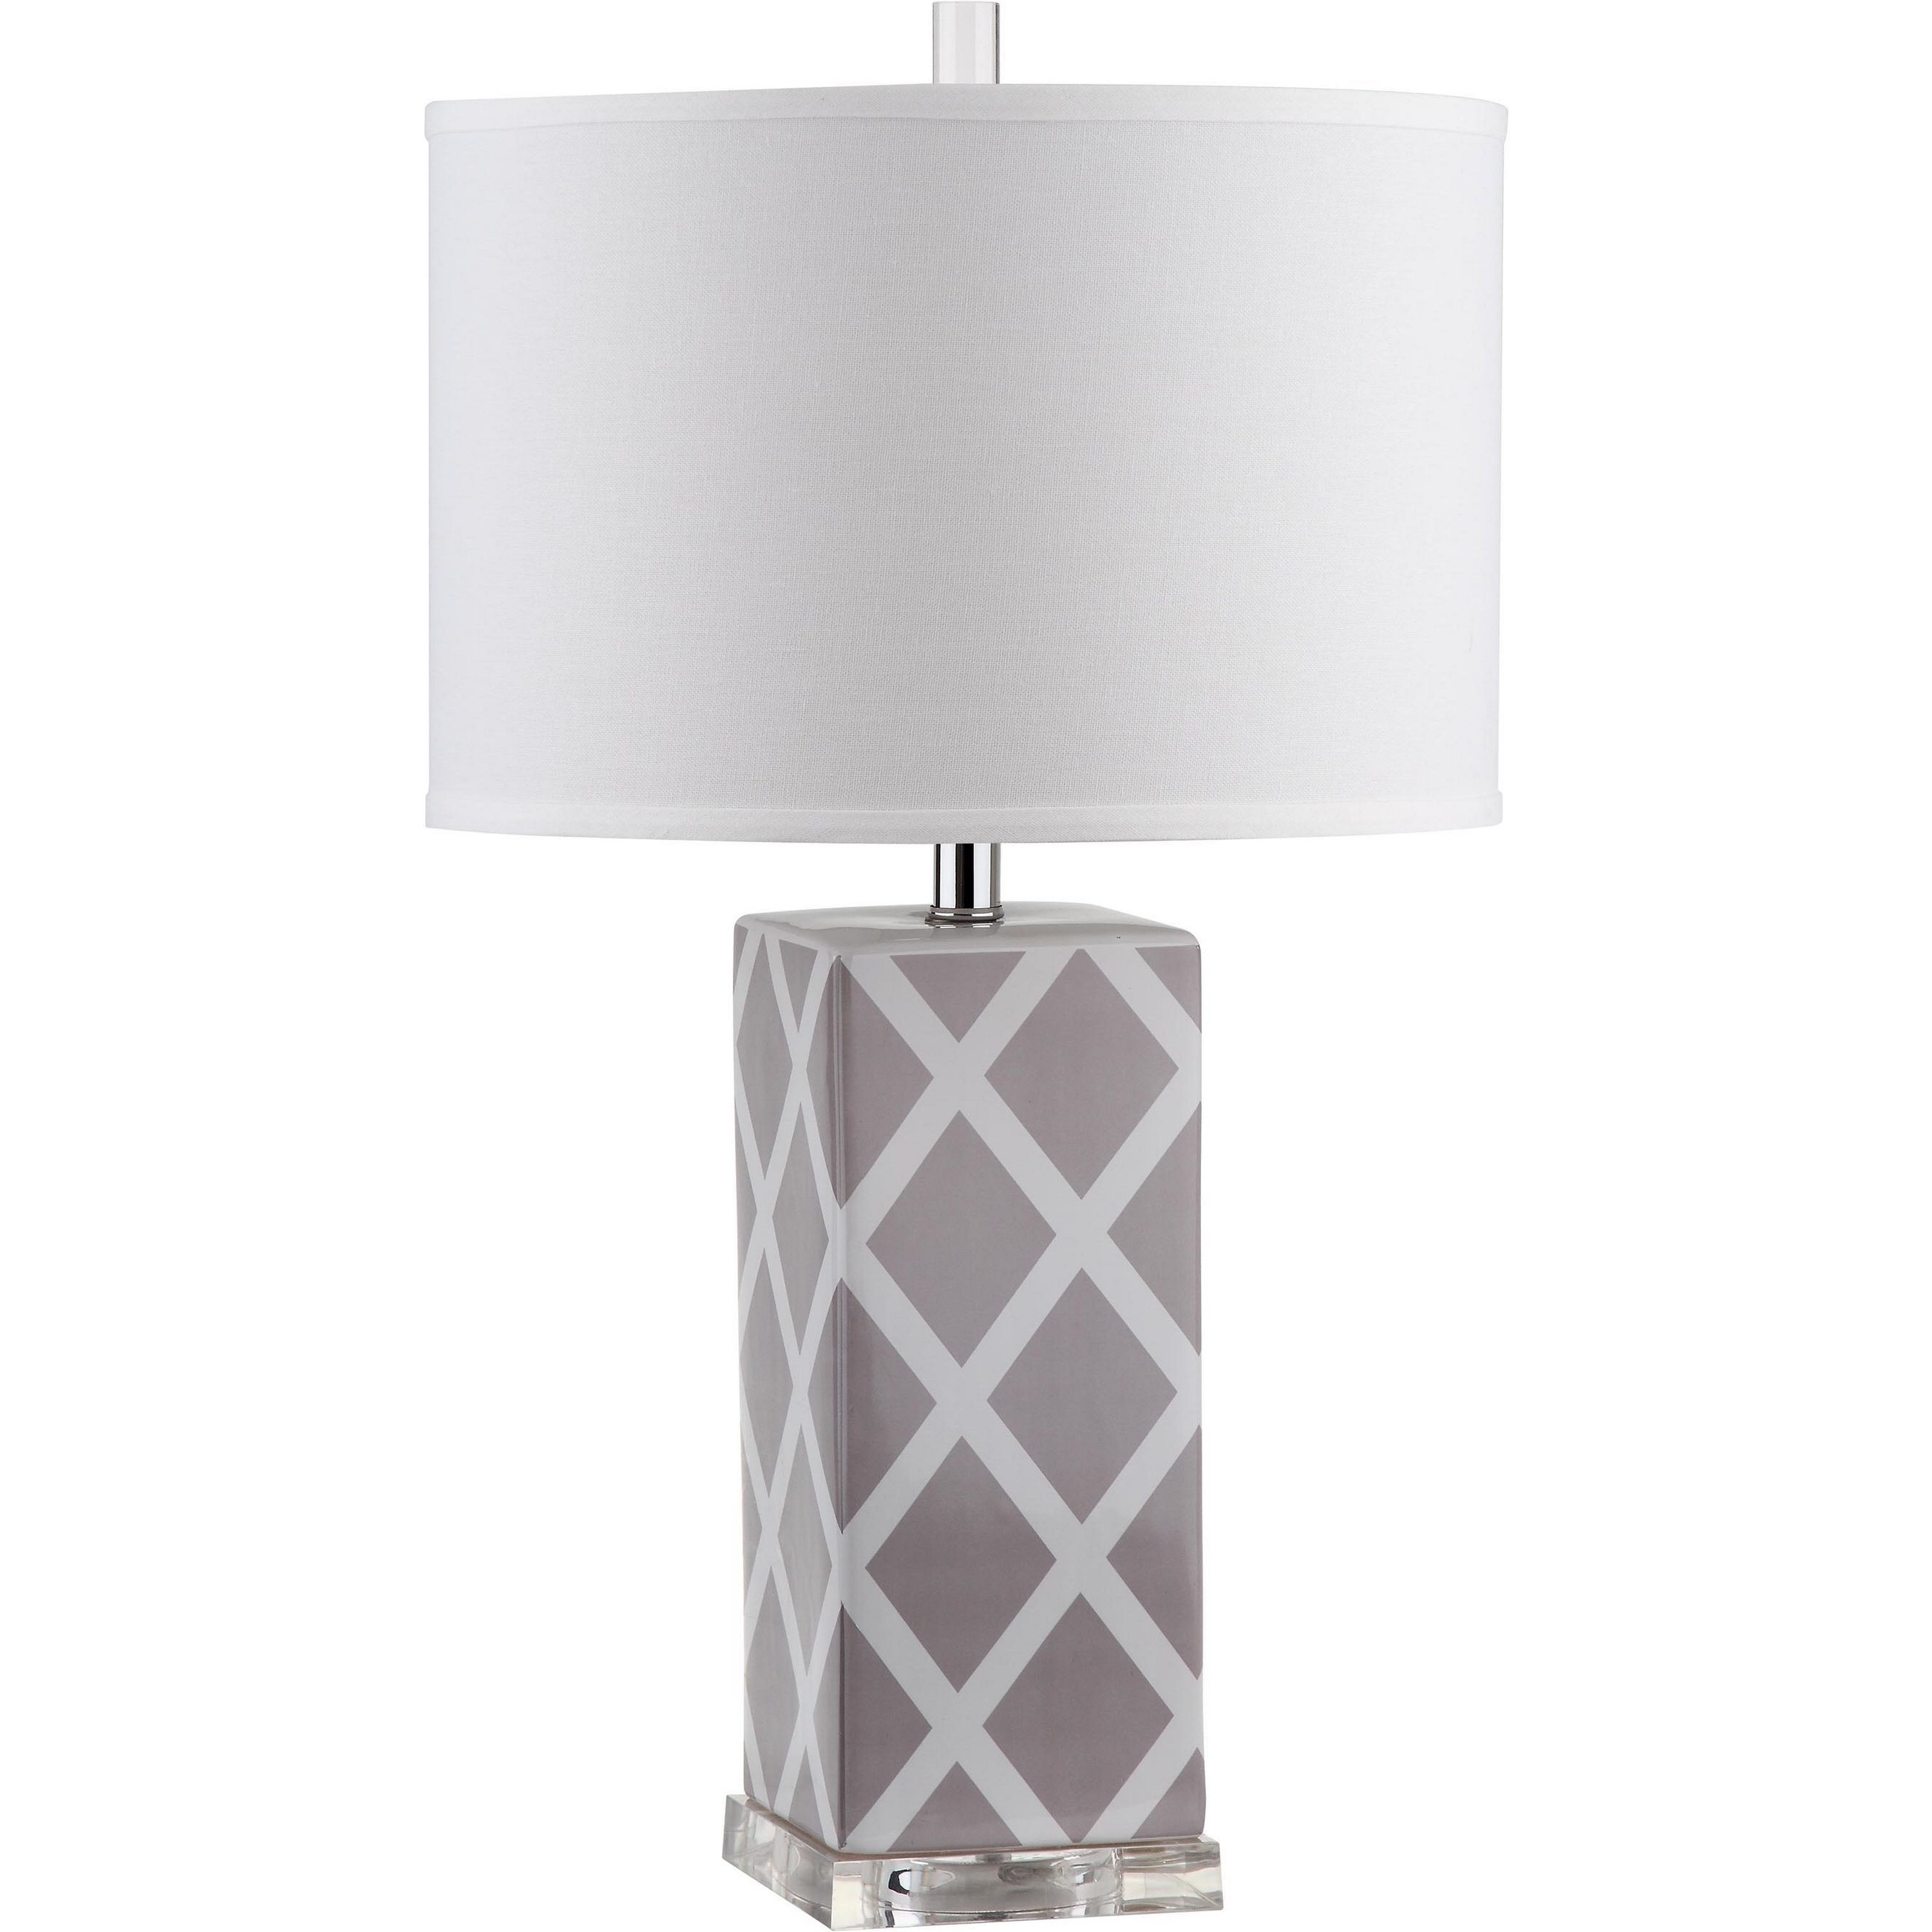 Most Recently Released Overstock Living Room Table Lamps In Modern Floor Lamps Overstock Unique Living Room Floor Lamps Luxury (View 20 of 20)